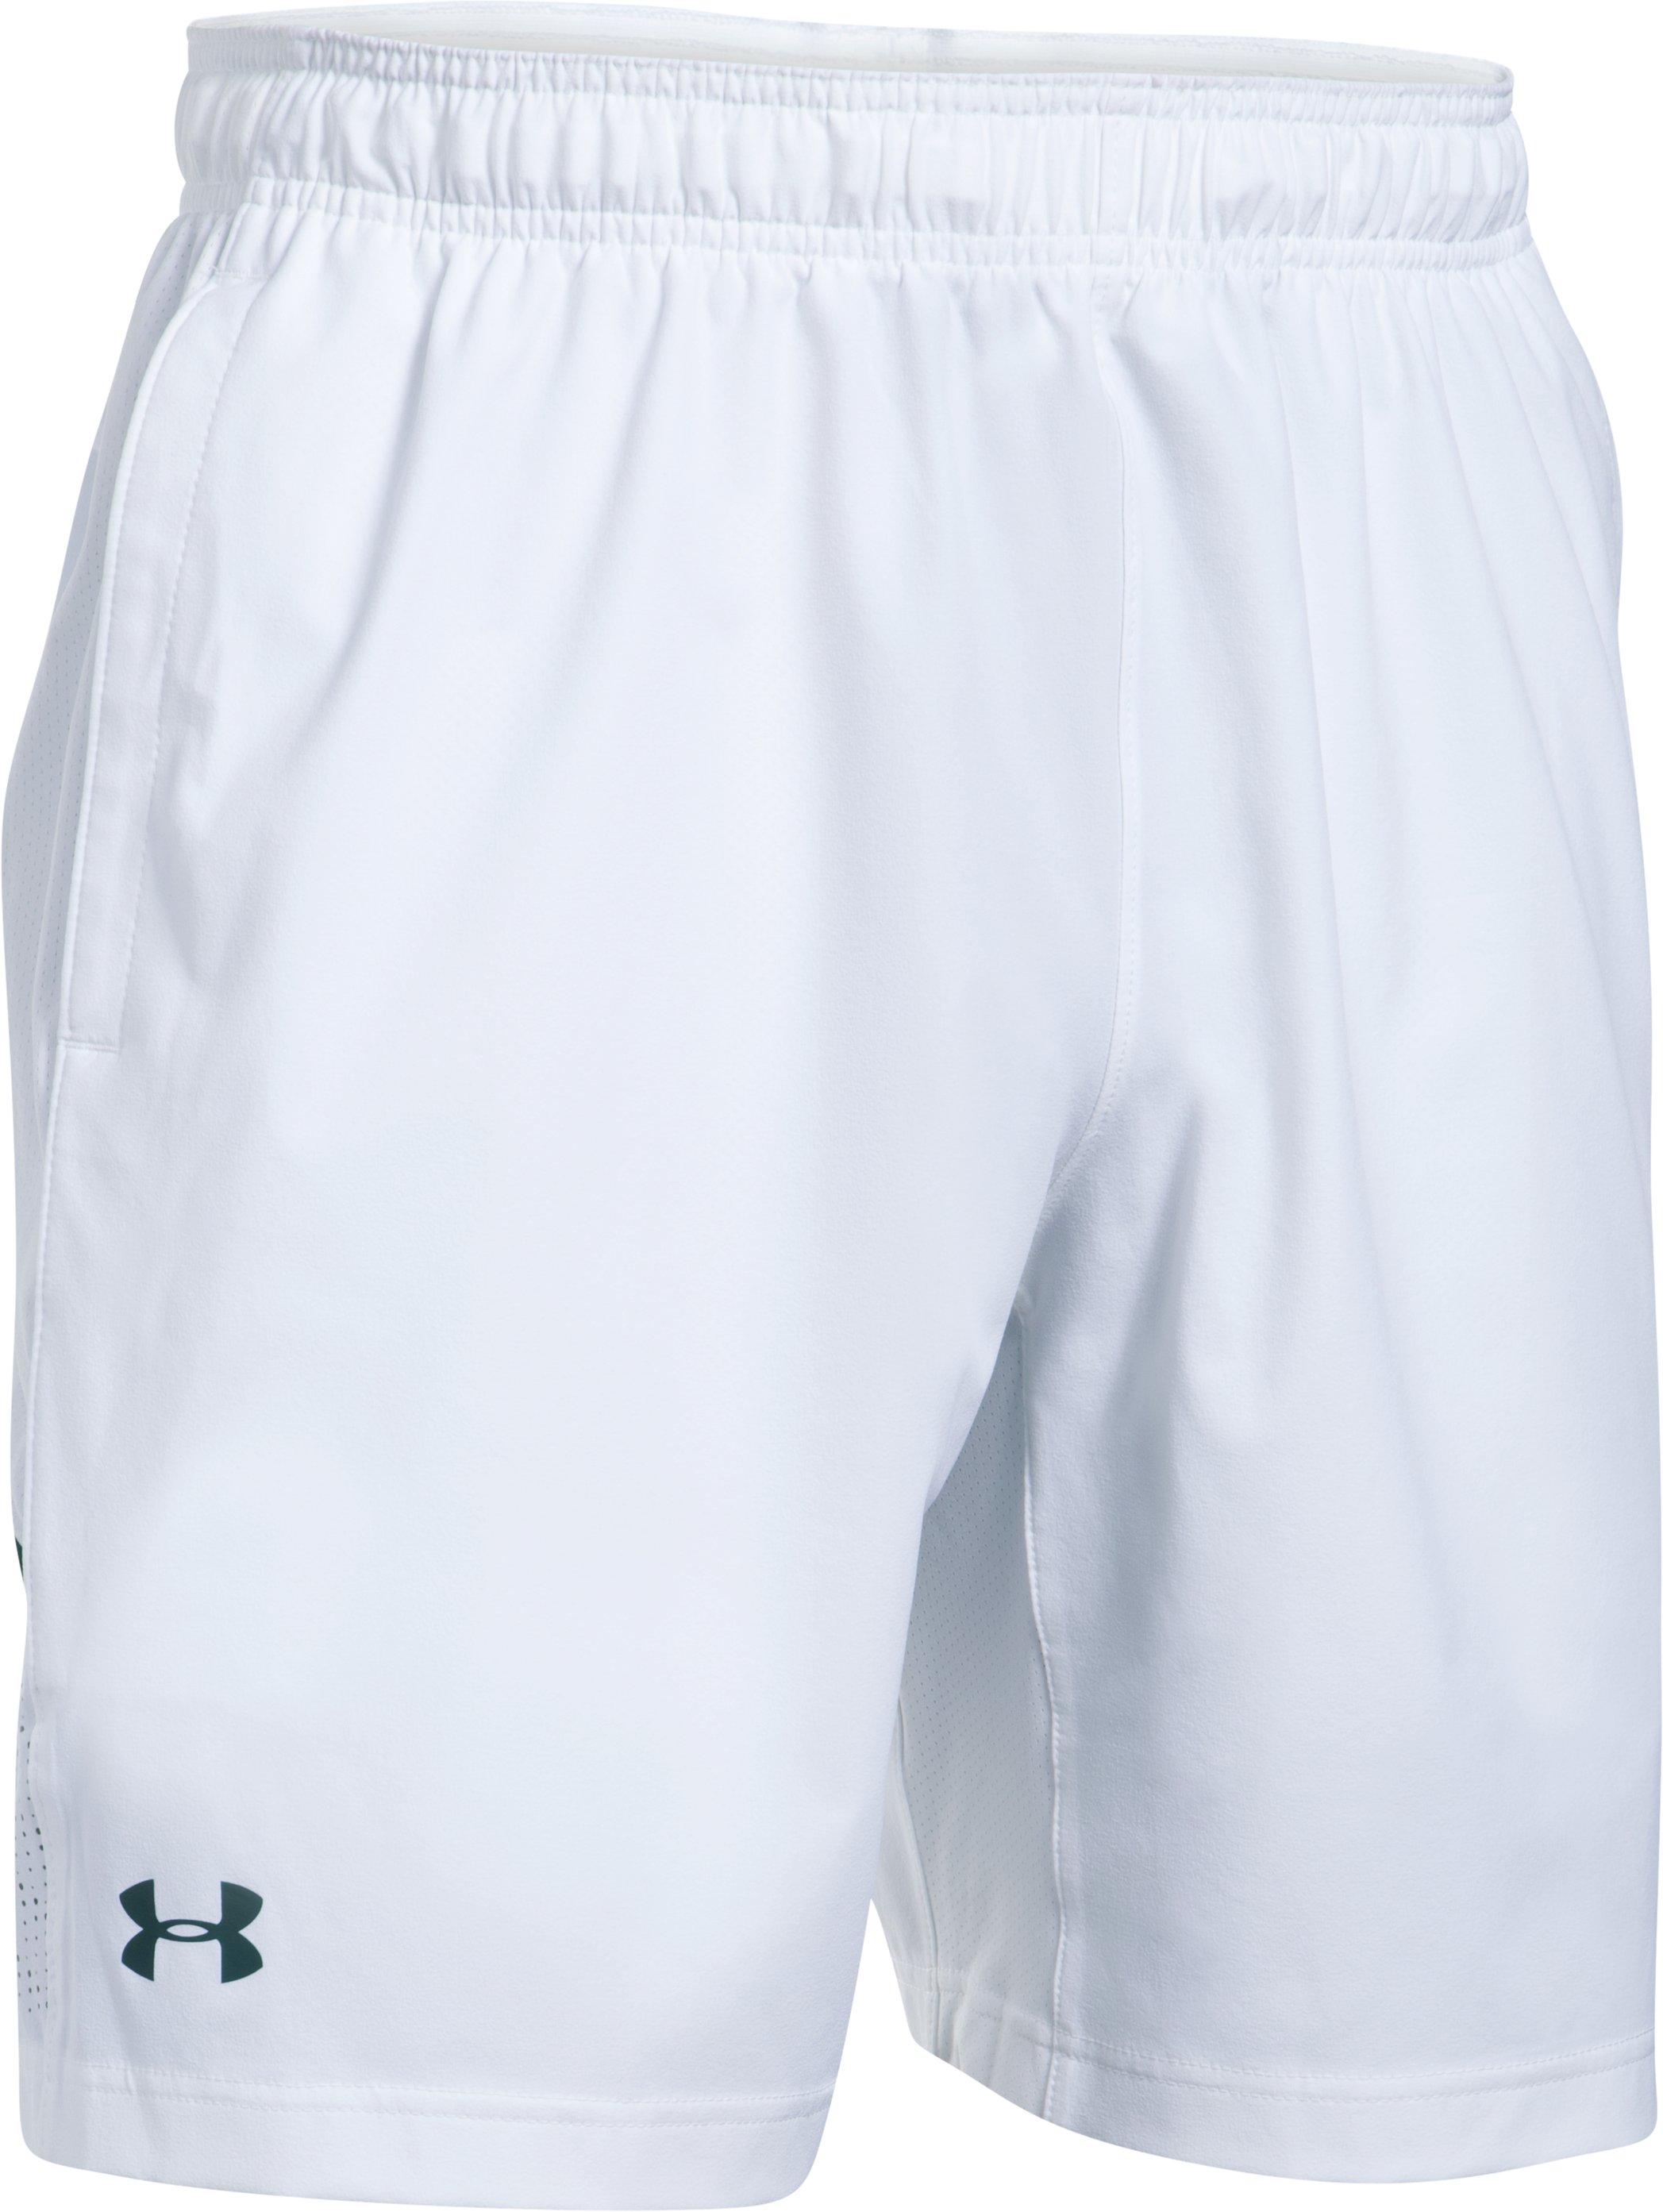 Men's UA Tennis Tournament Shorts, White,